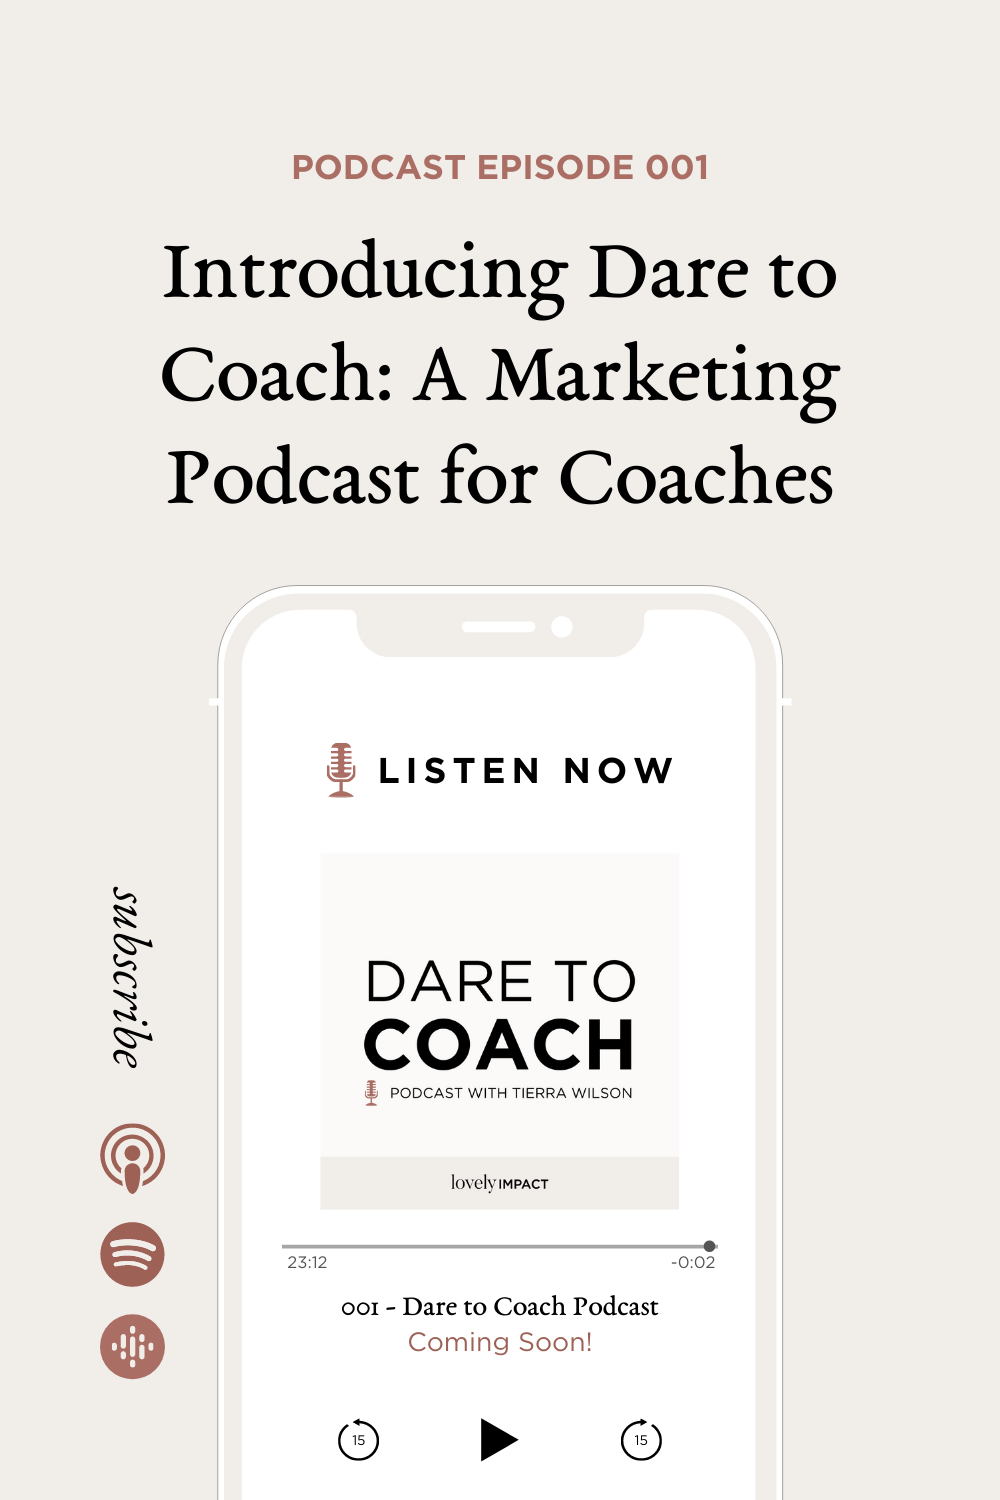 Introducing Dare to Coach! A Marketing Podcast for Coaches